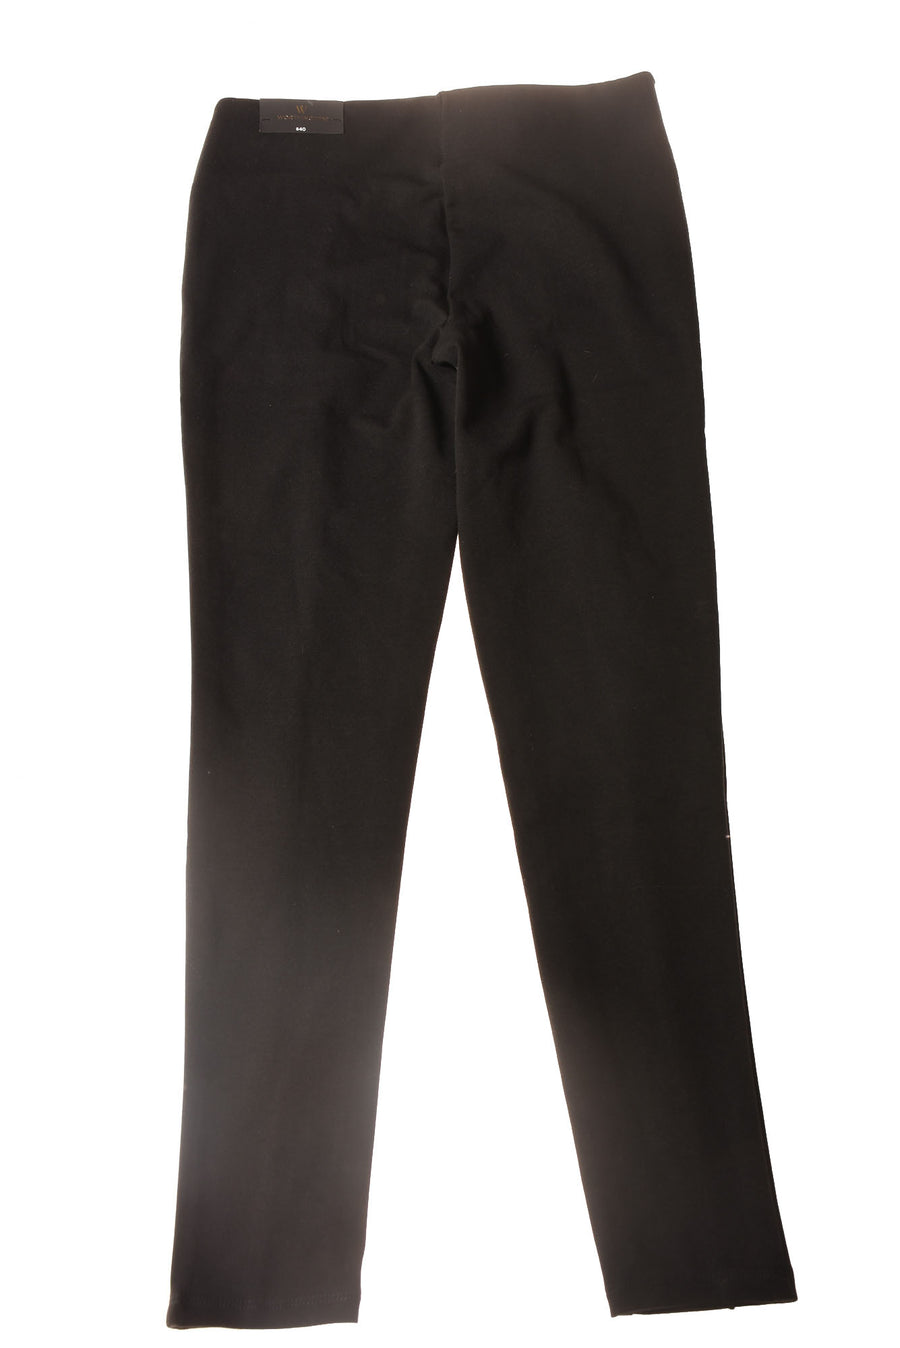 NEW Worthington Women's Pants Small Black